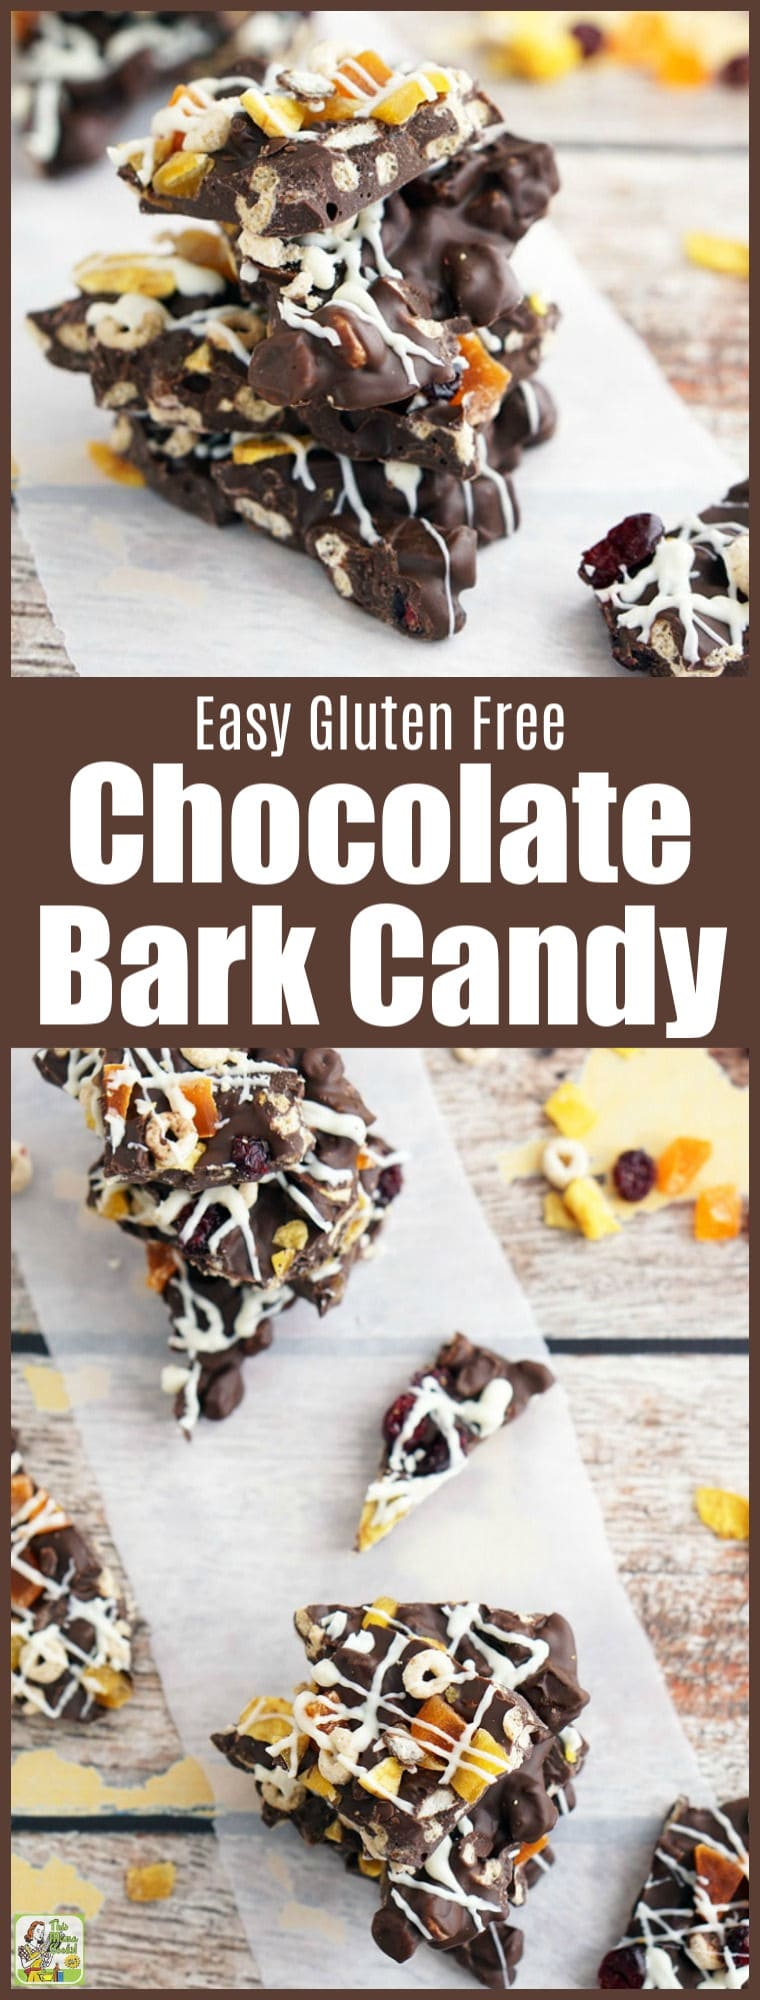 This Easy Gluten Free Chocolate Bark Candy makes an awesome snack. This easy to make bark candy recipe is made Frosty Cheerios, dried fruit, and candy melts or semi-sweet dark chocolate. Great for homemade candy DIY gifts and Christmas holiday cookie exchanges. #chocolate #homemade #candy #holiday #holidayrecipes #Christmas #glutenfree #glutenfreerecipes #recipe #recipes #snacks #bark #cookies